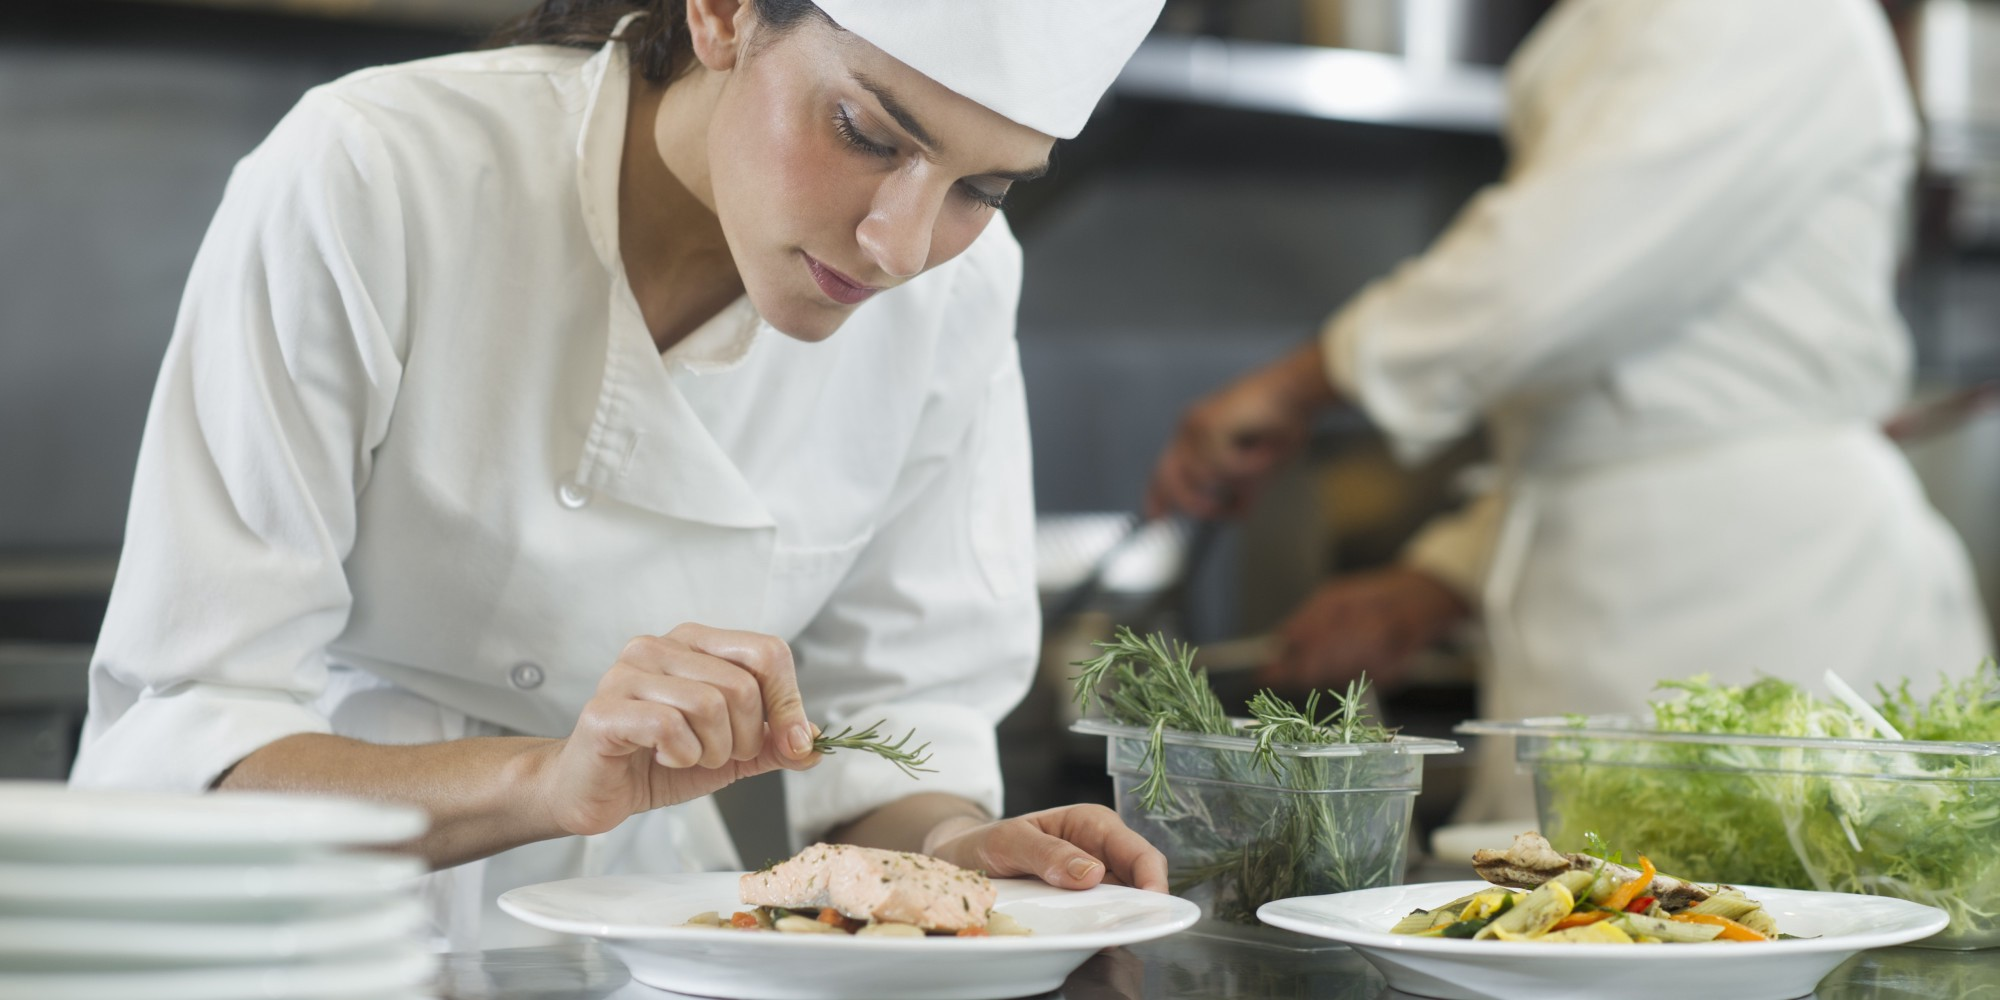 Is it Fair to Ask a Chef to Work 14 Hour Days? – Track and Food – Medium